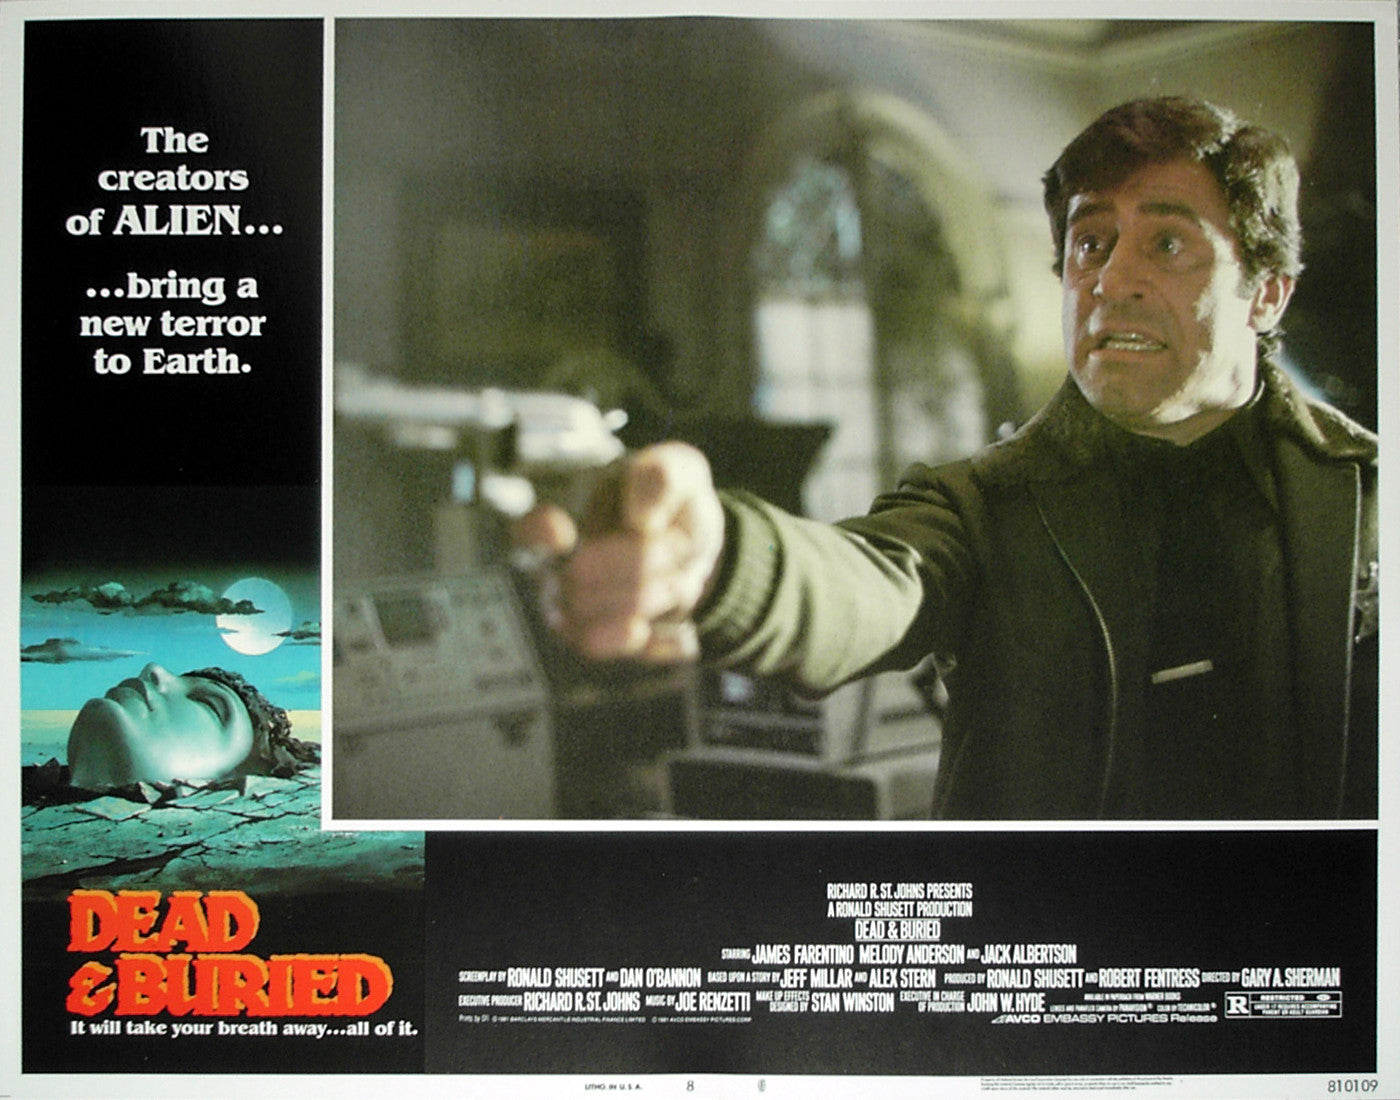 DEAD & BURIED - US lobby card v8